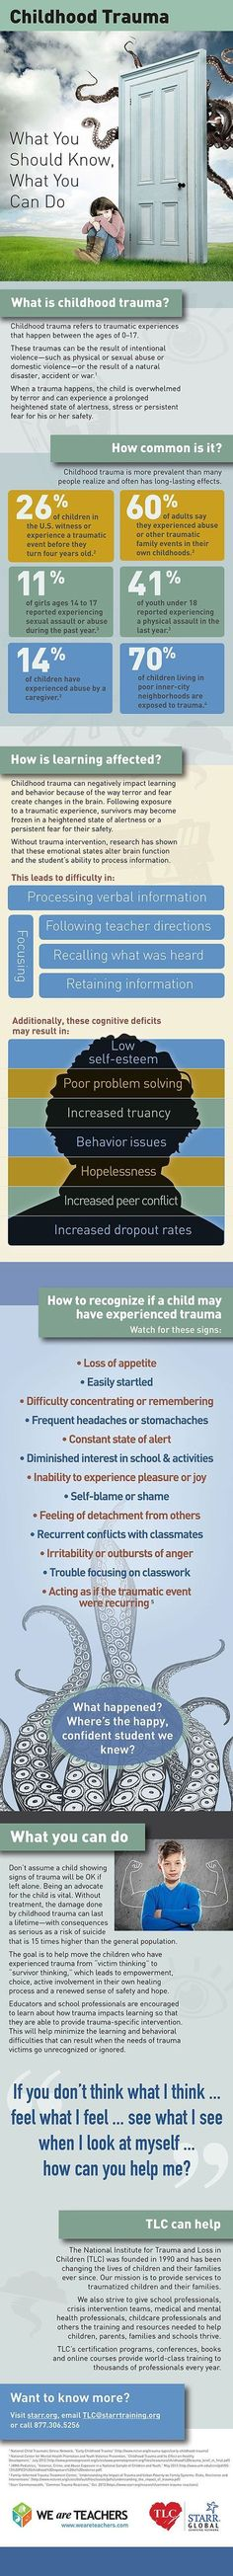 Childhood Trauma - What you should know and what you should do: